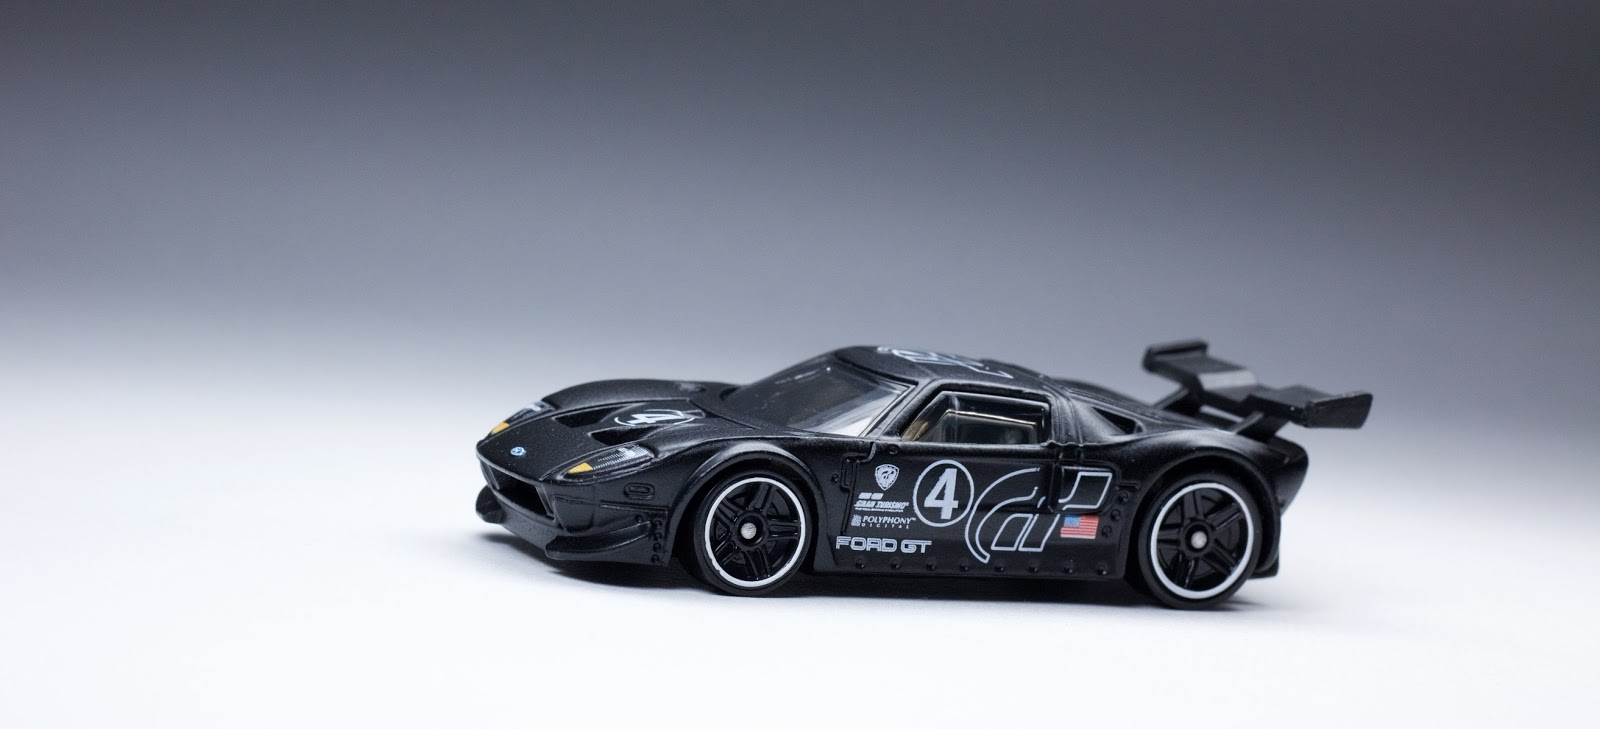 Ford Gt Lm Hot Wheels Gran Turismo Serie Willex Trs Things Pinterest Ford Gt